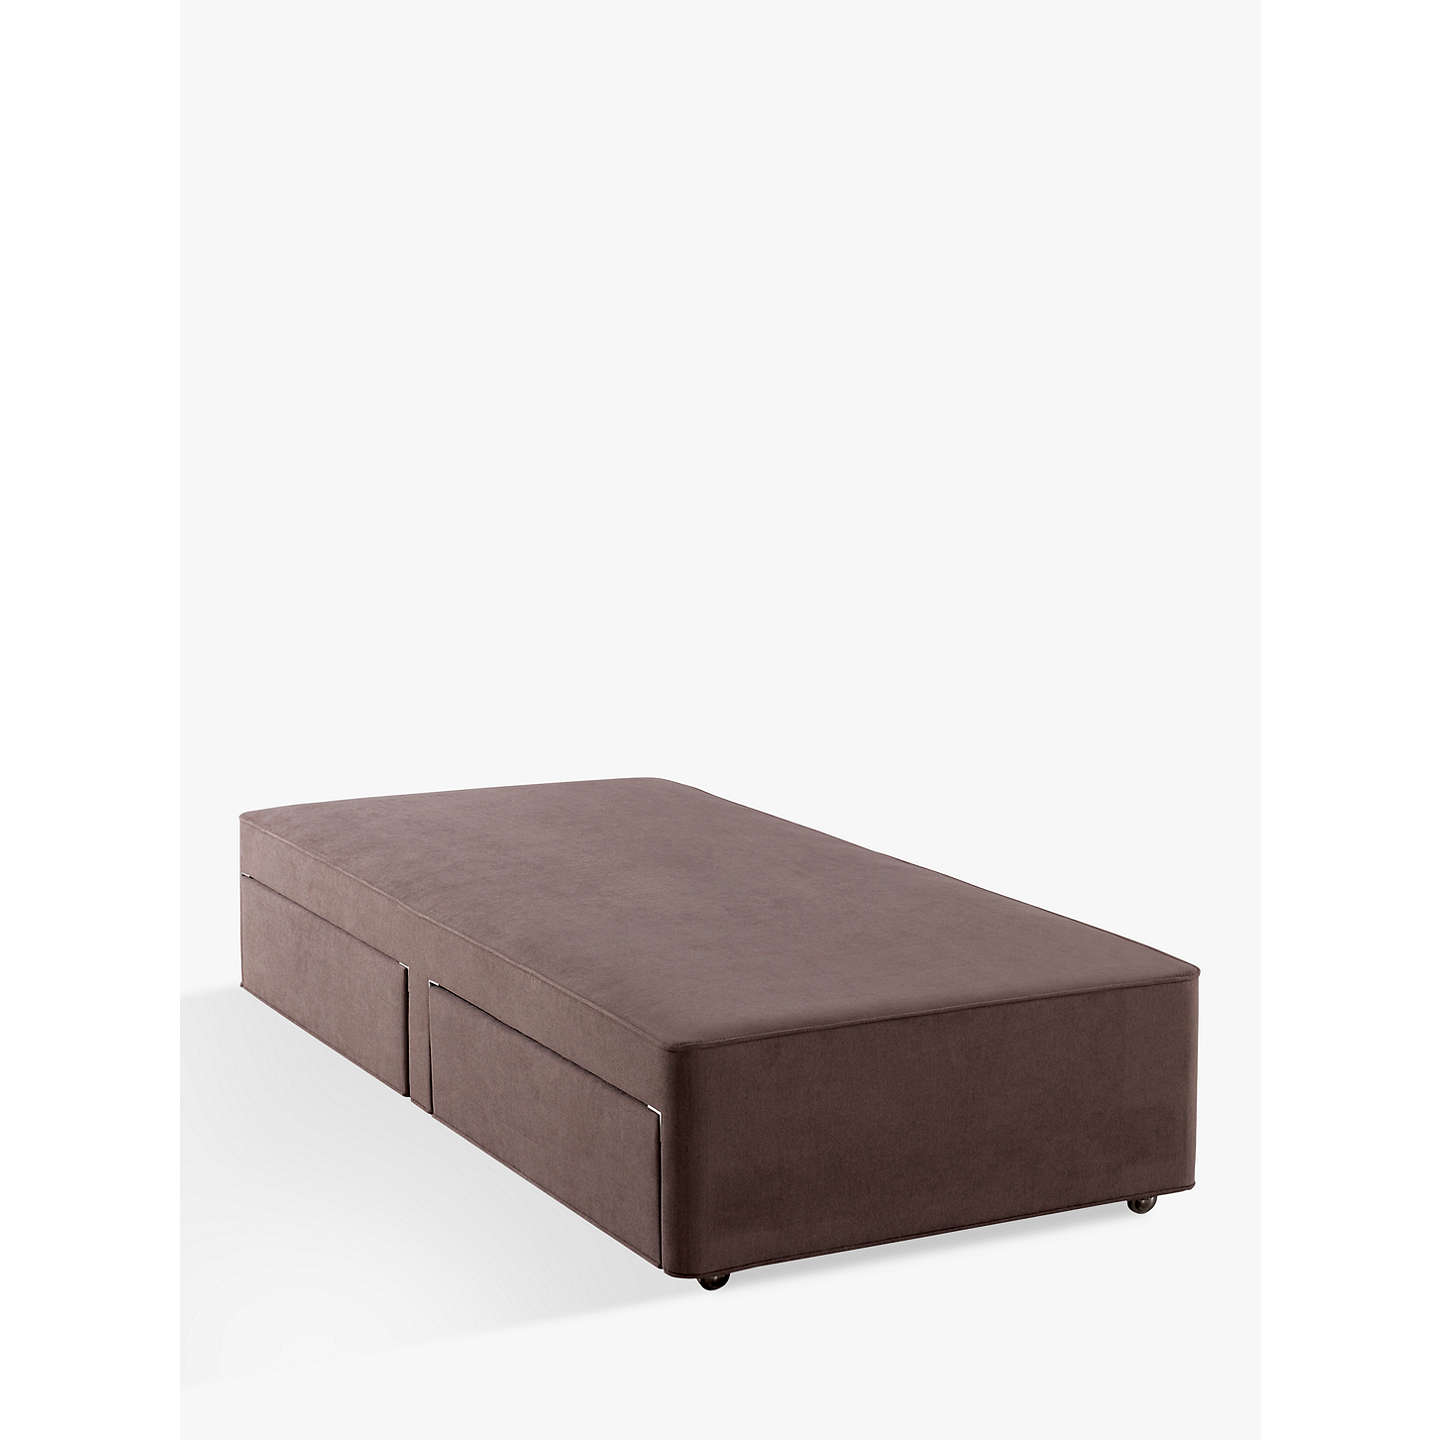 Hypnos firm edge 2 drawer divan storage bed single at for Divan john lewis